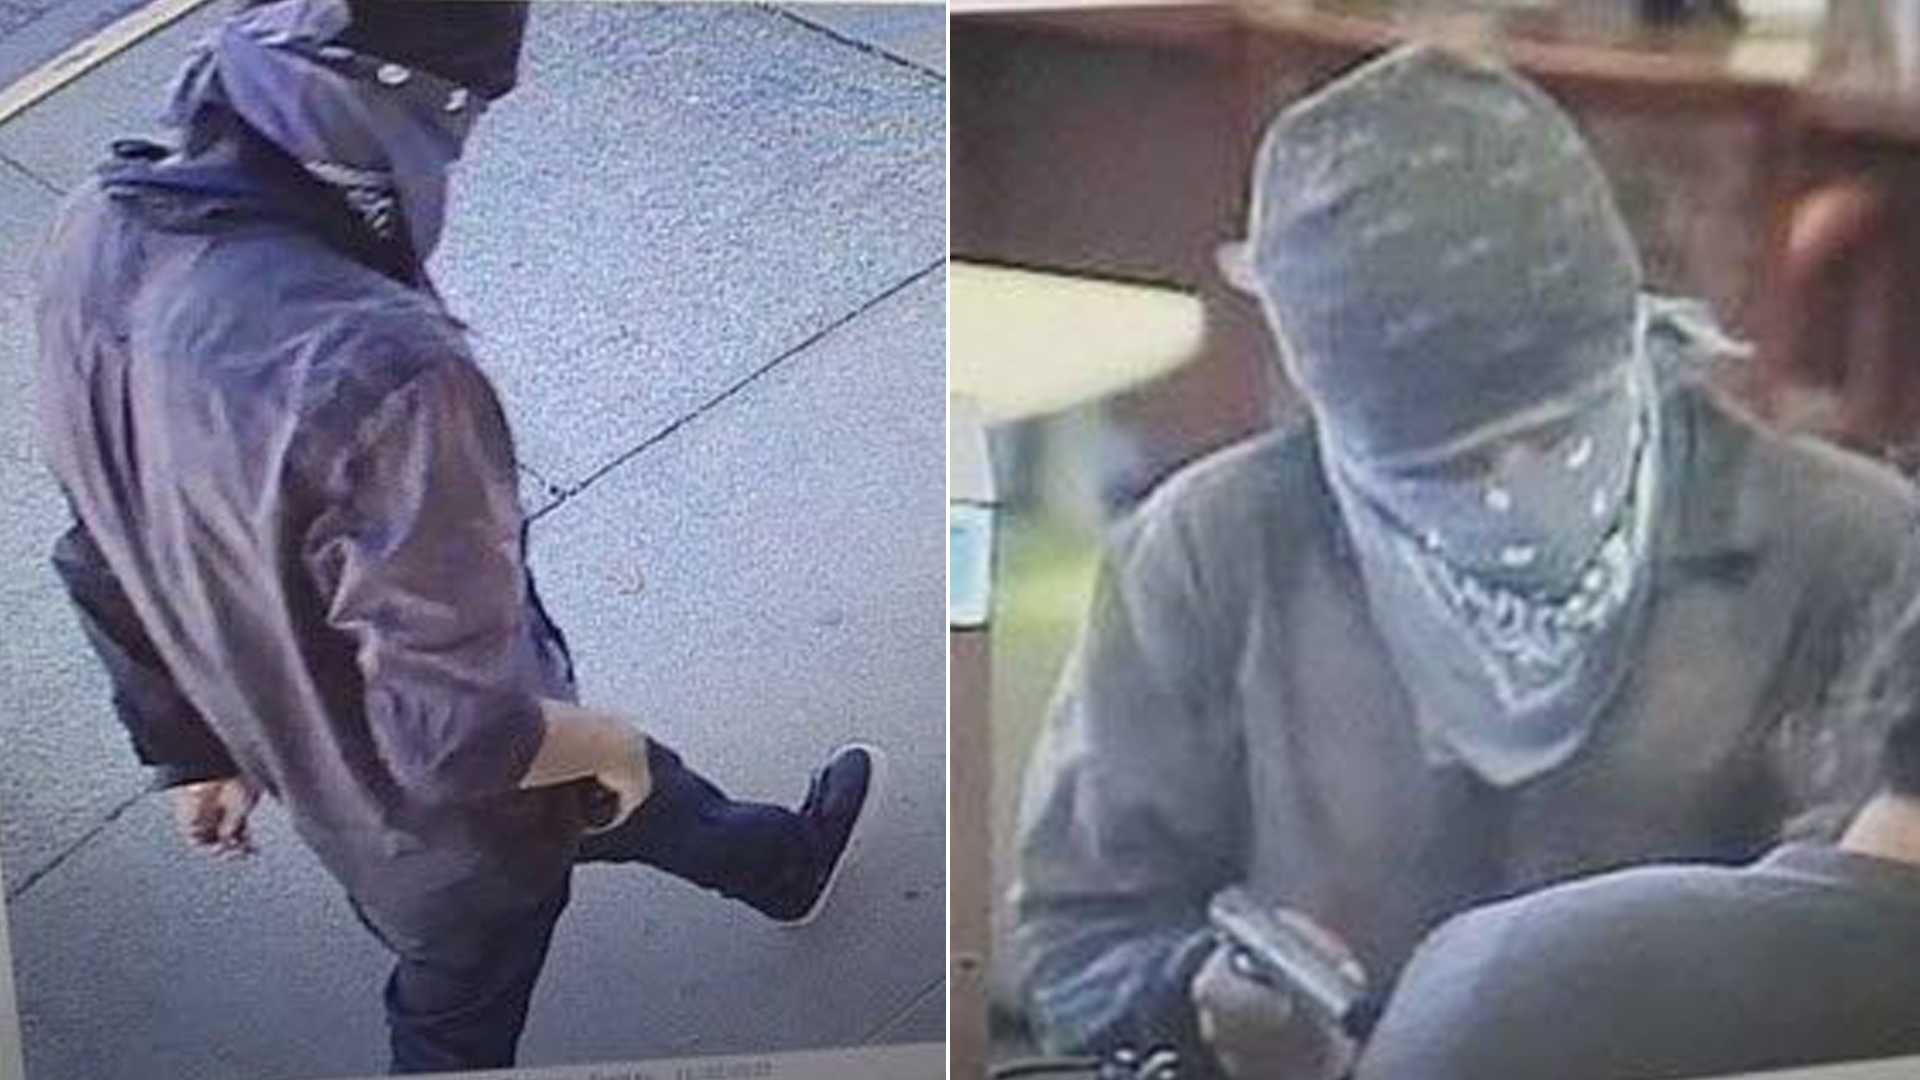 Deputies are looking for a man who robbed the Exchange Bank in Roseland at gunpoint on Monday, Nov. 21, 2016. These are surveillance photos from the robbery.